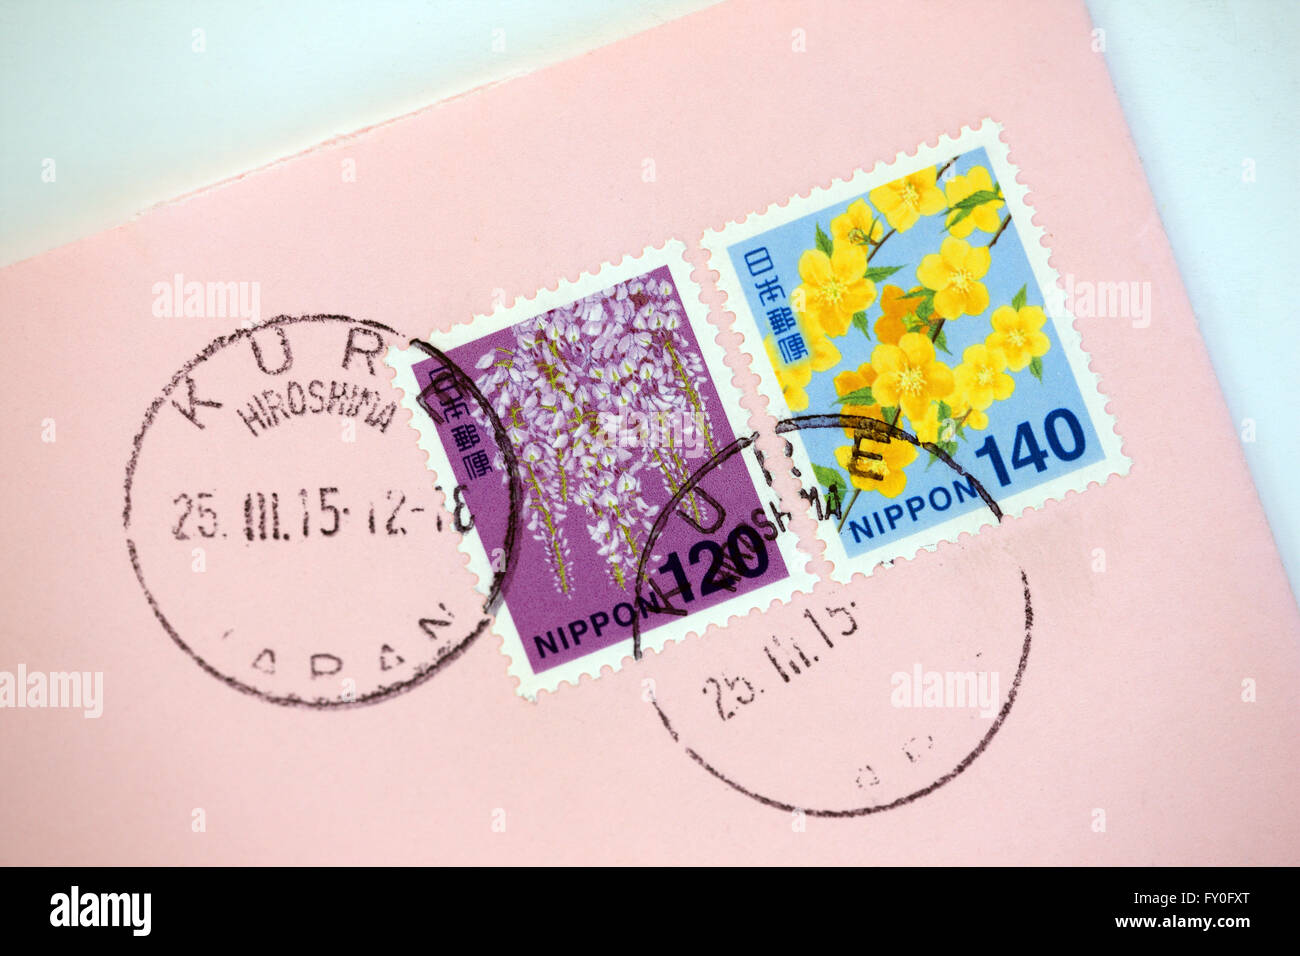 Japanese stamps on a pink envelope and Hiroshima postmark - Stock Image